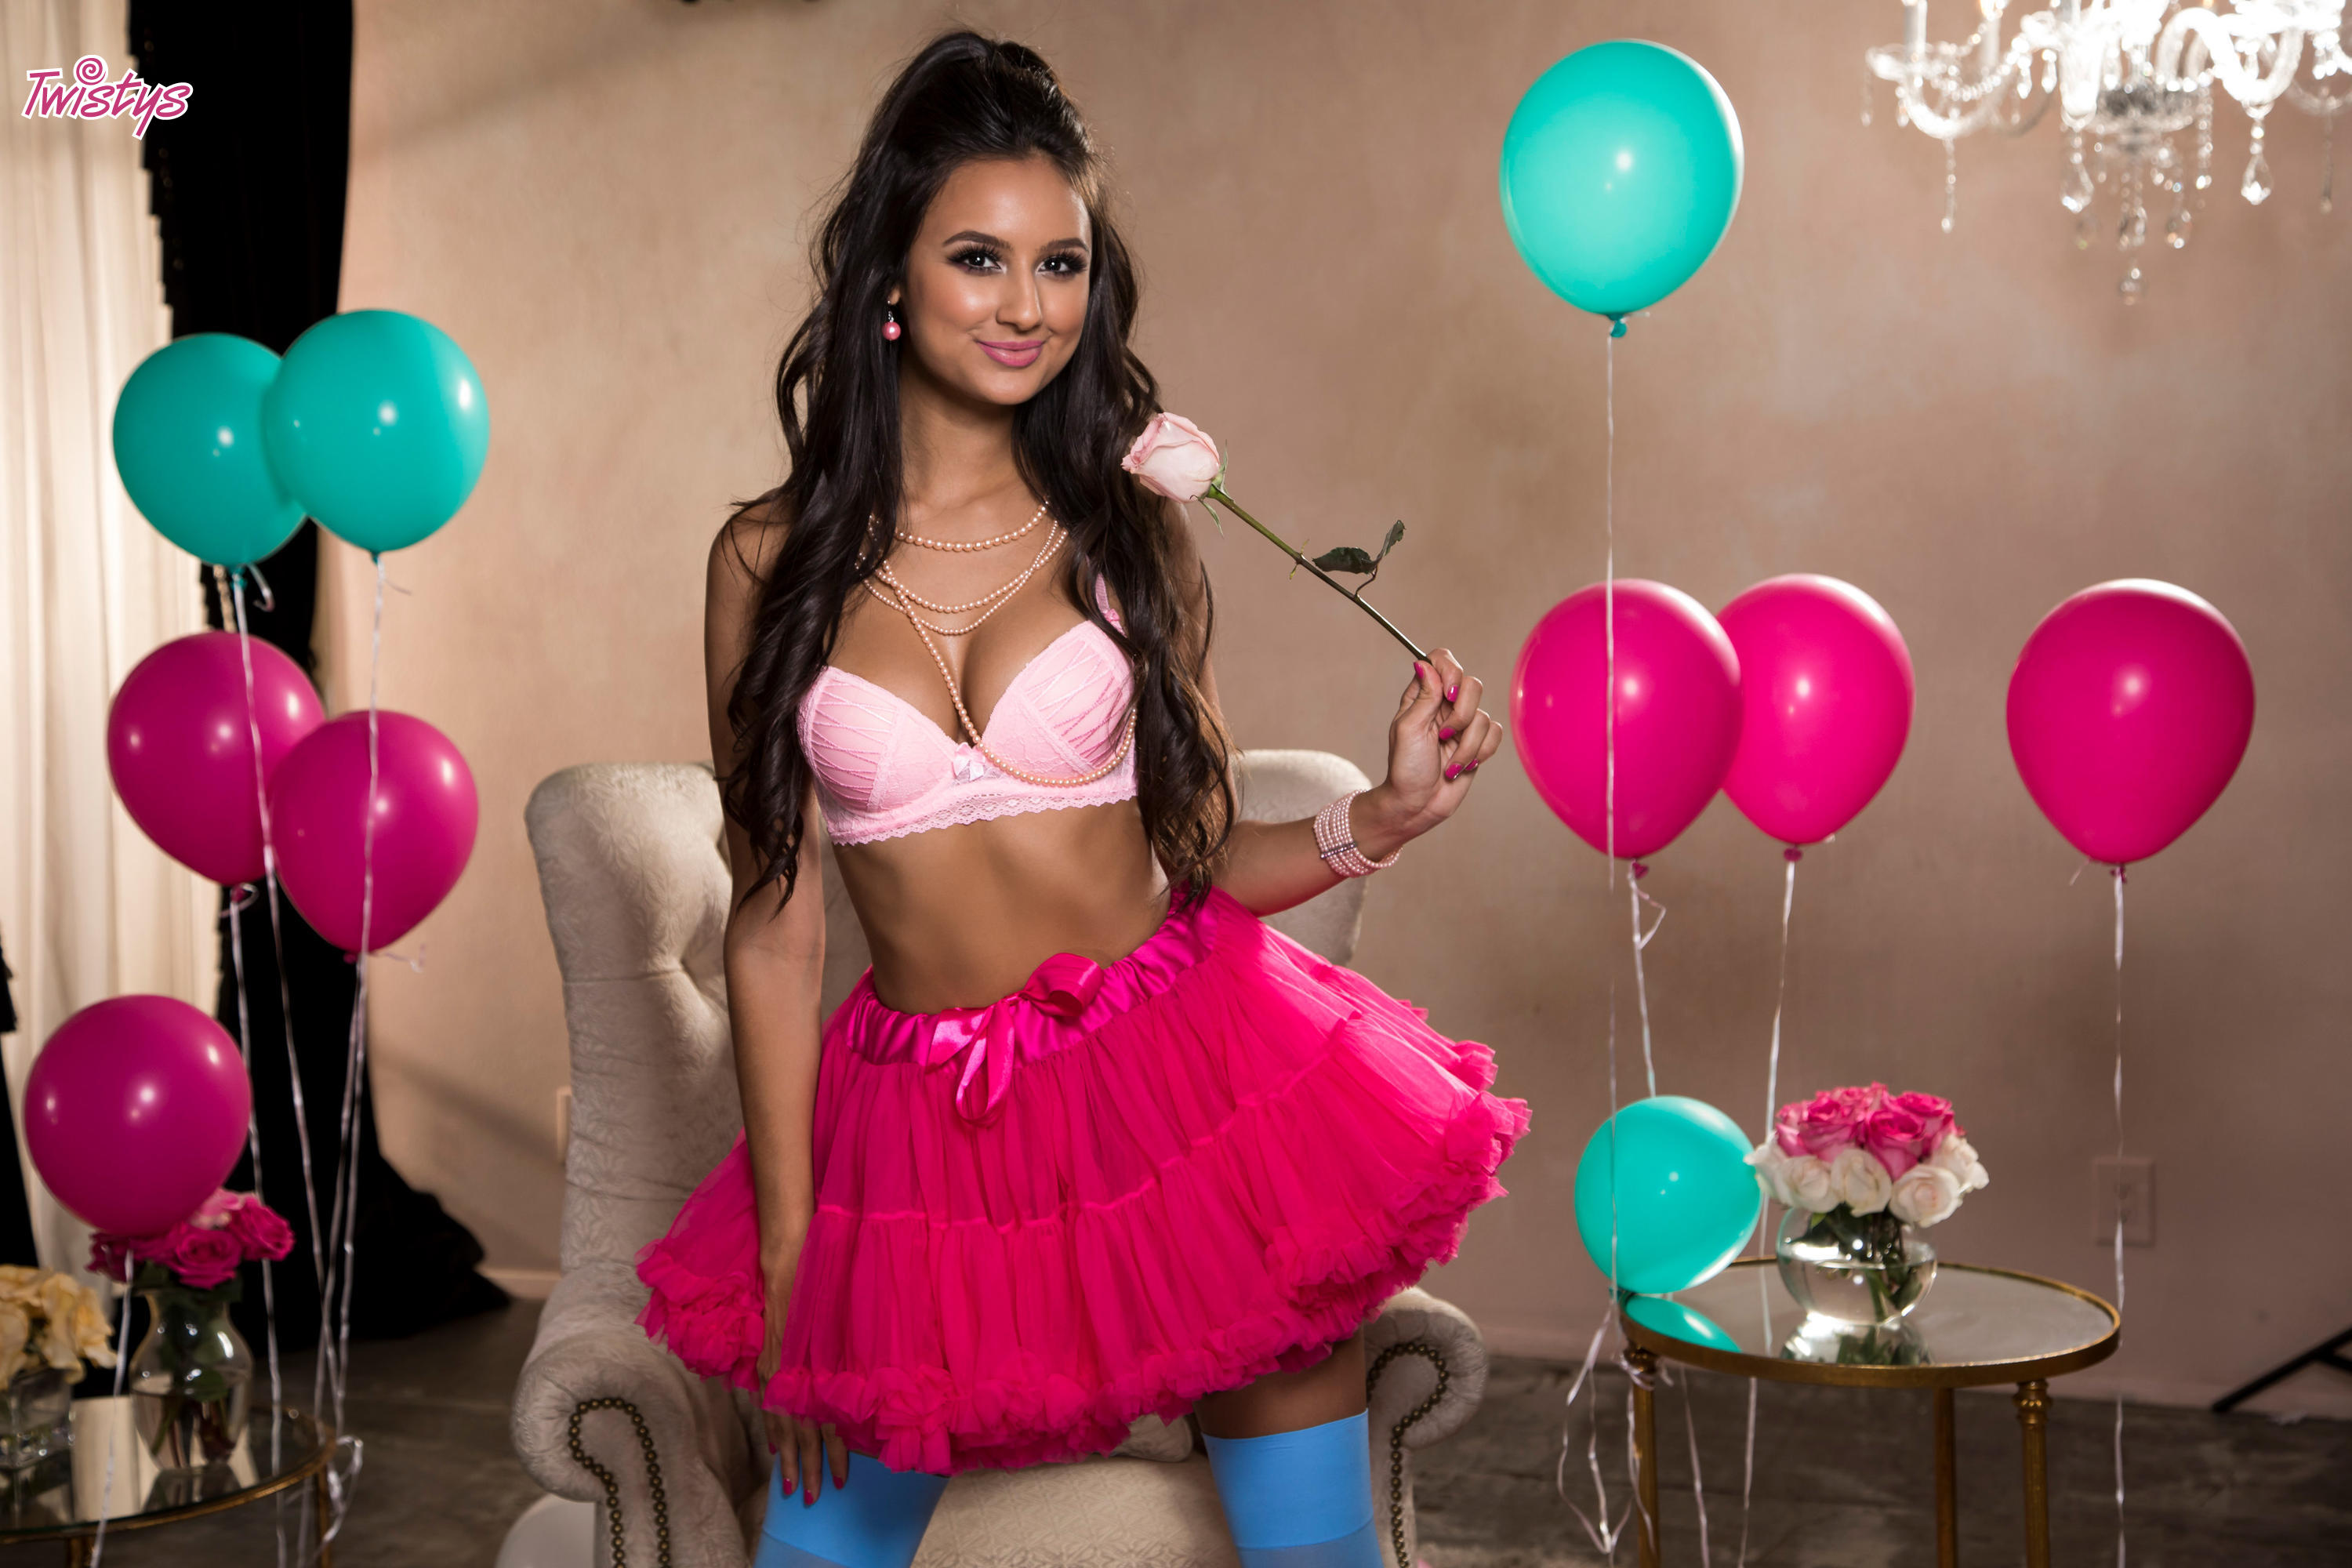 Twistys 'Balloons and Bubble Gum' starring Eliza Ibarra (Photo 12)